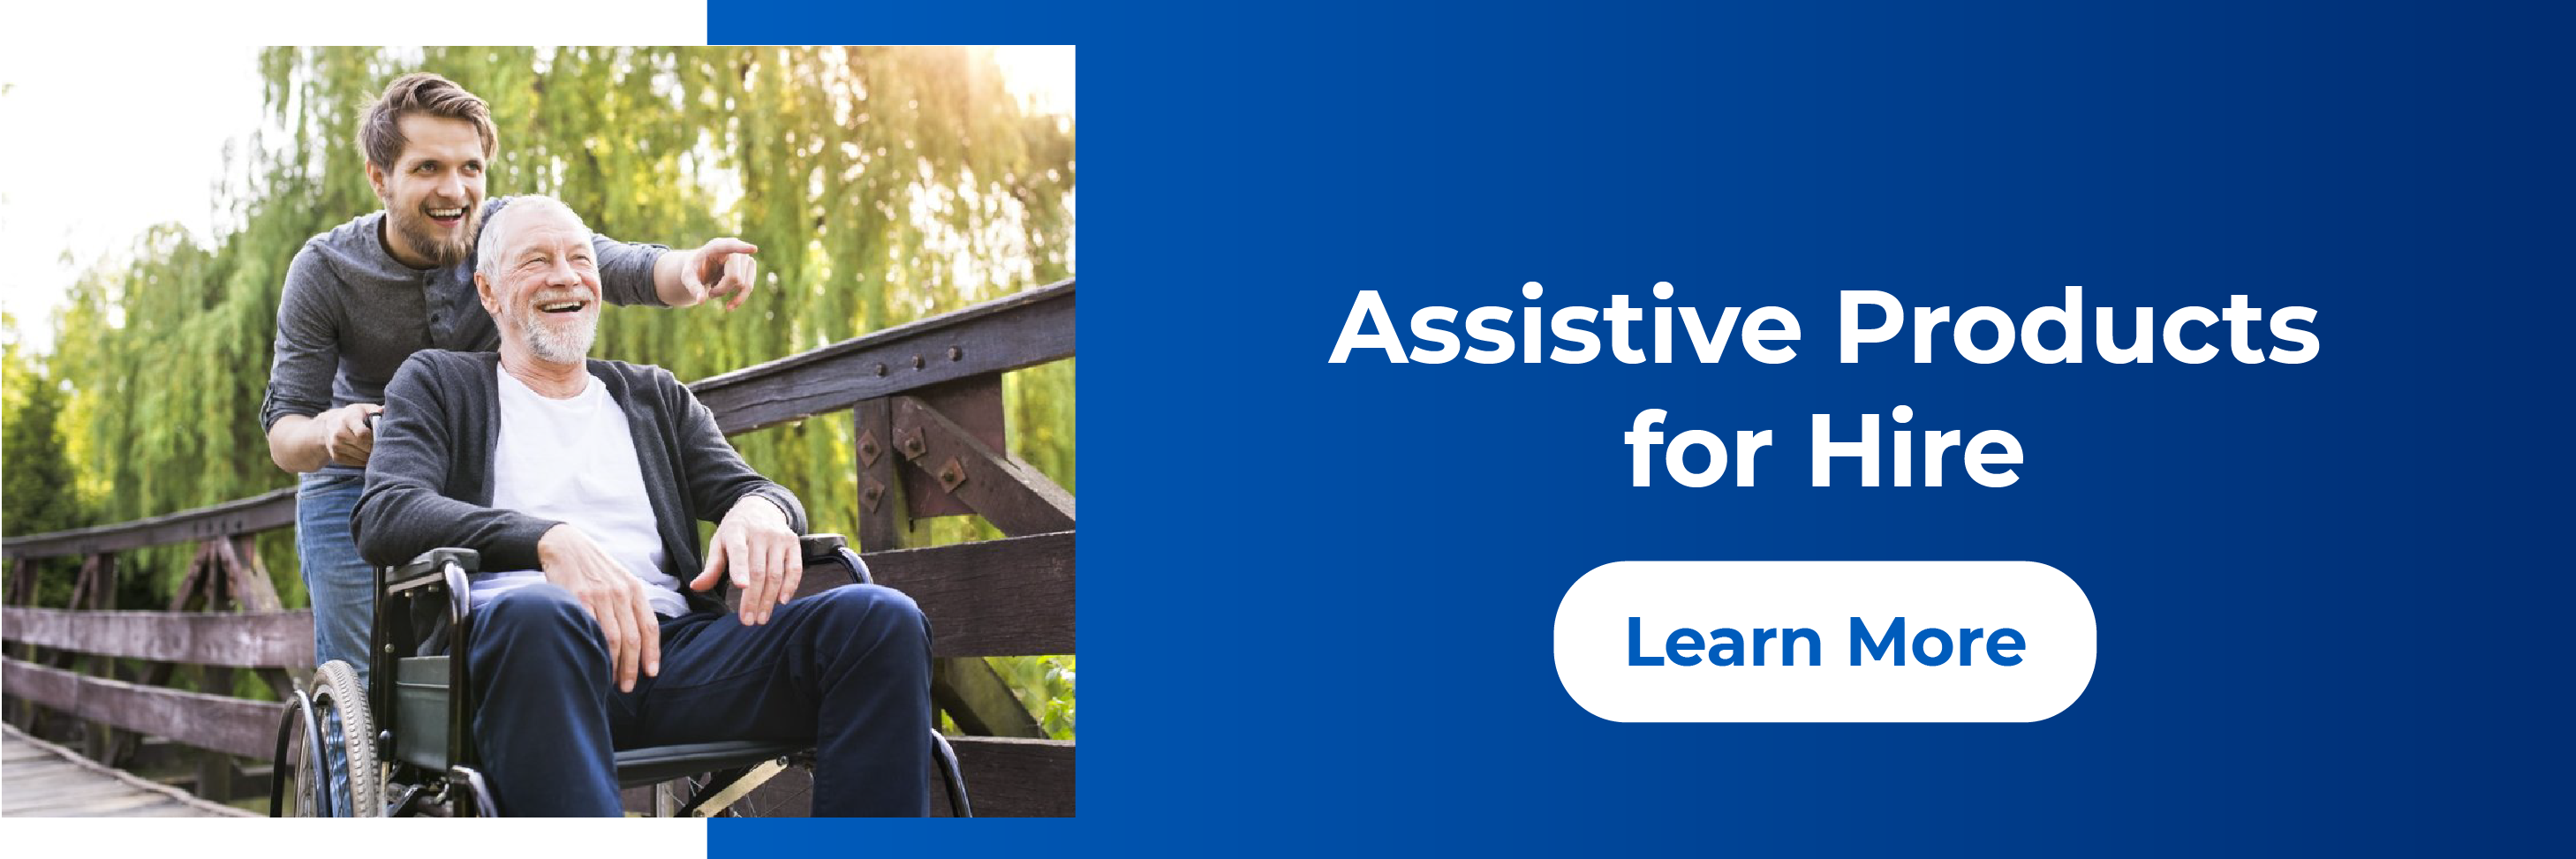 Assistive Product Hire